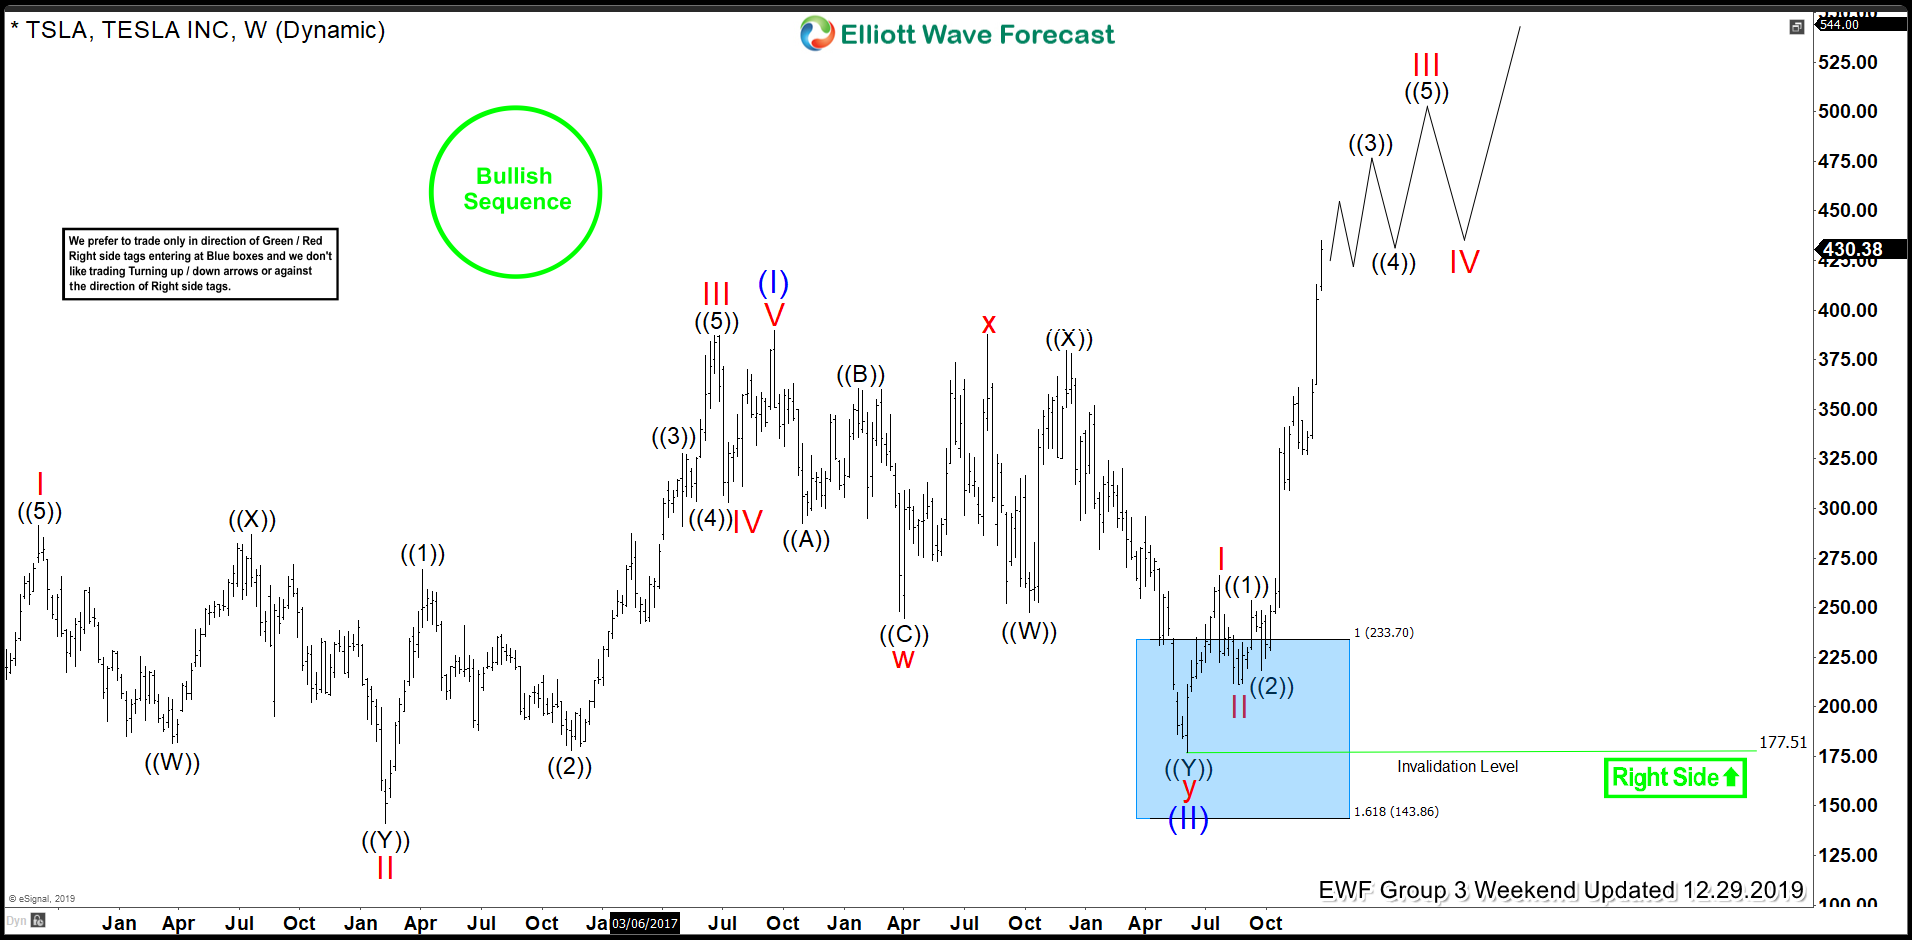 TSLA Weekly Elliott Wave Analysis 29 December 2019